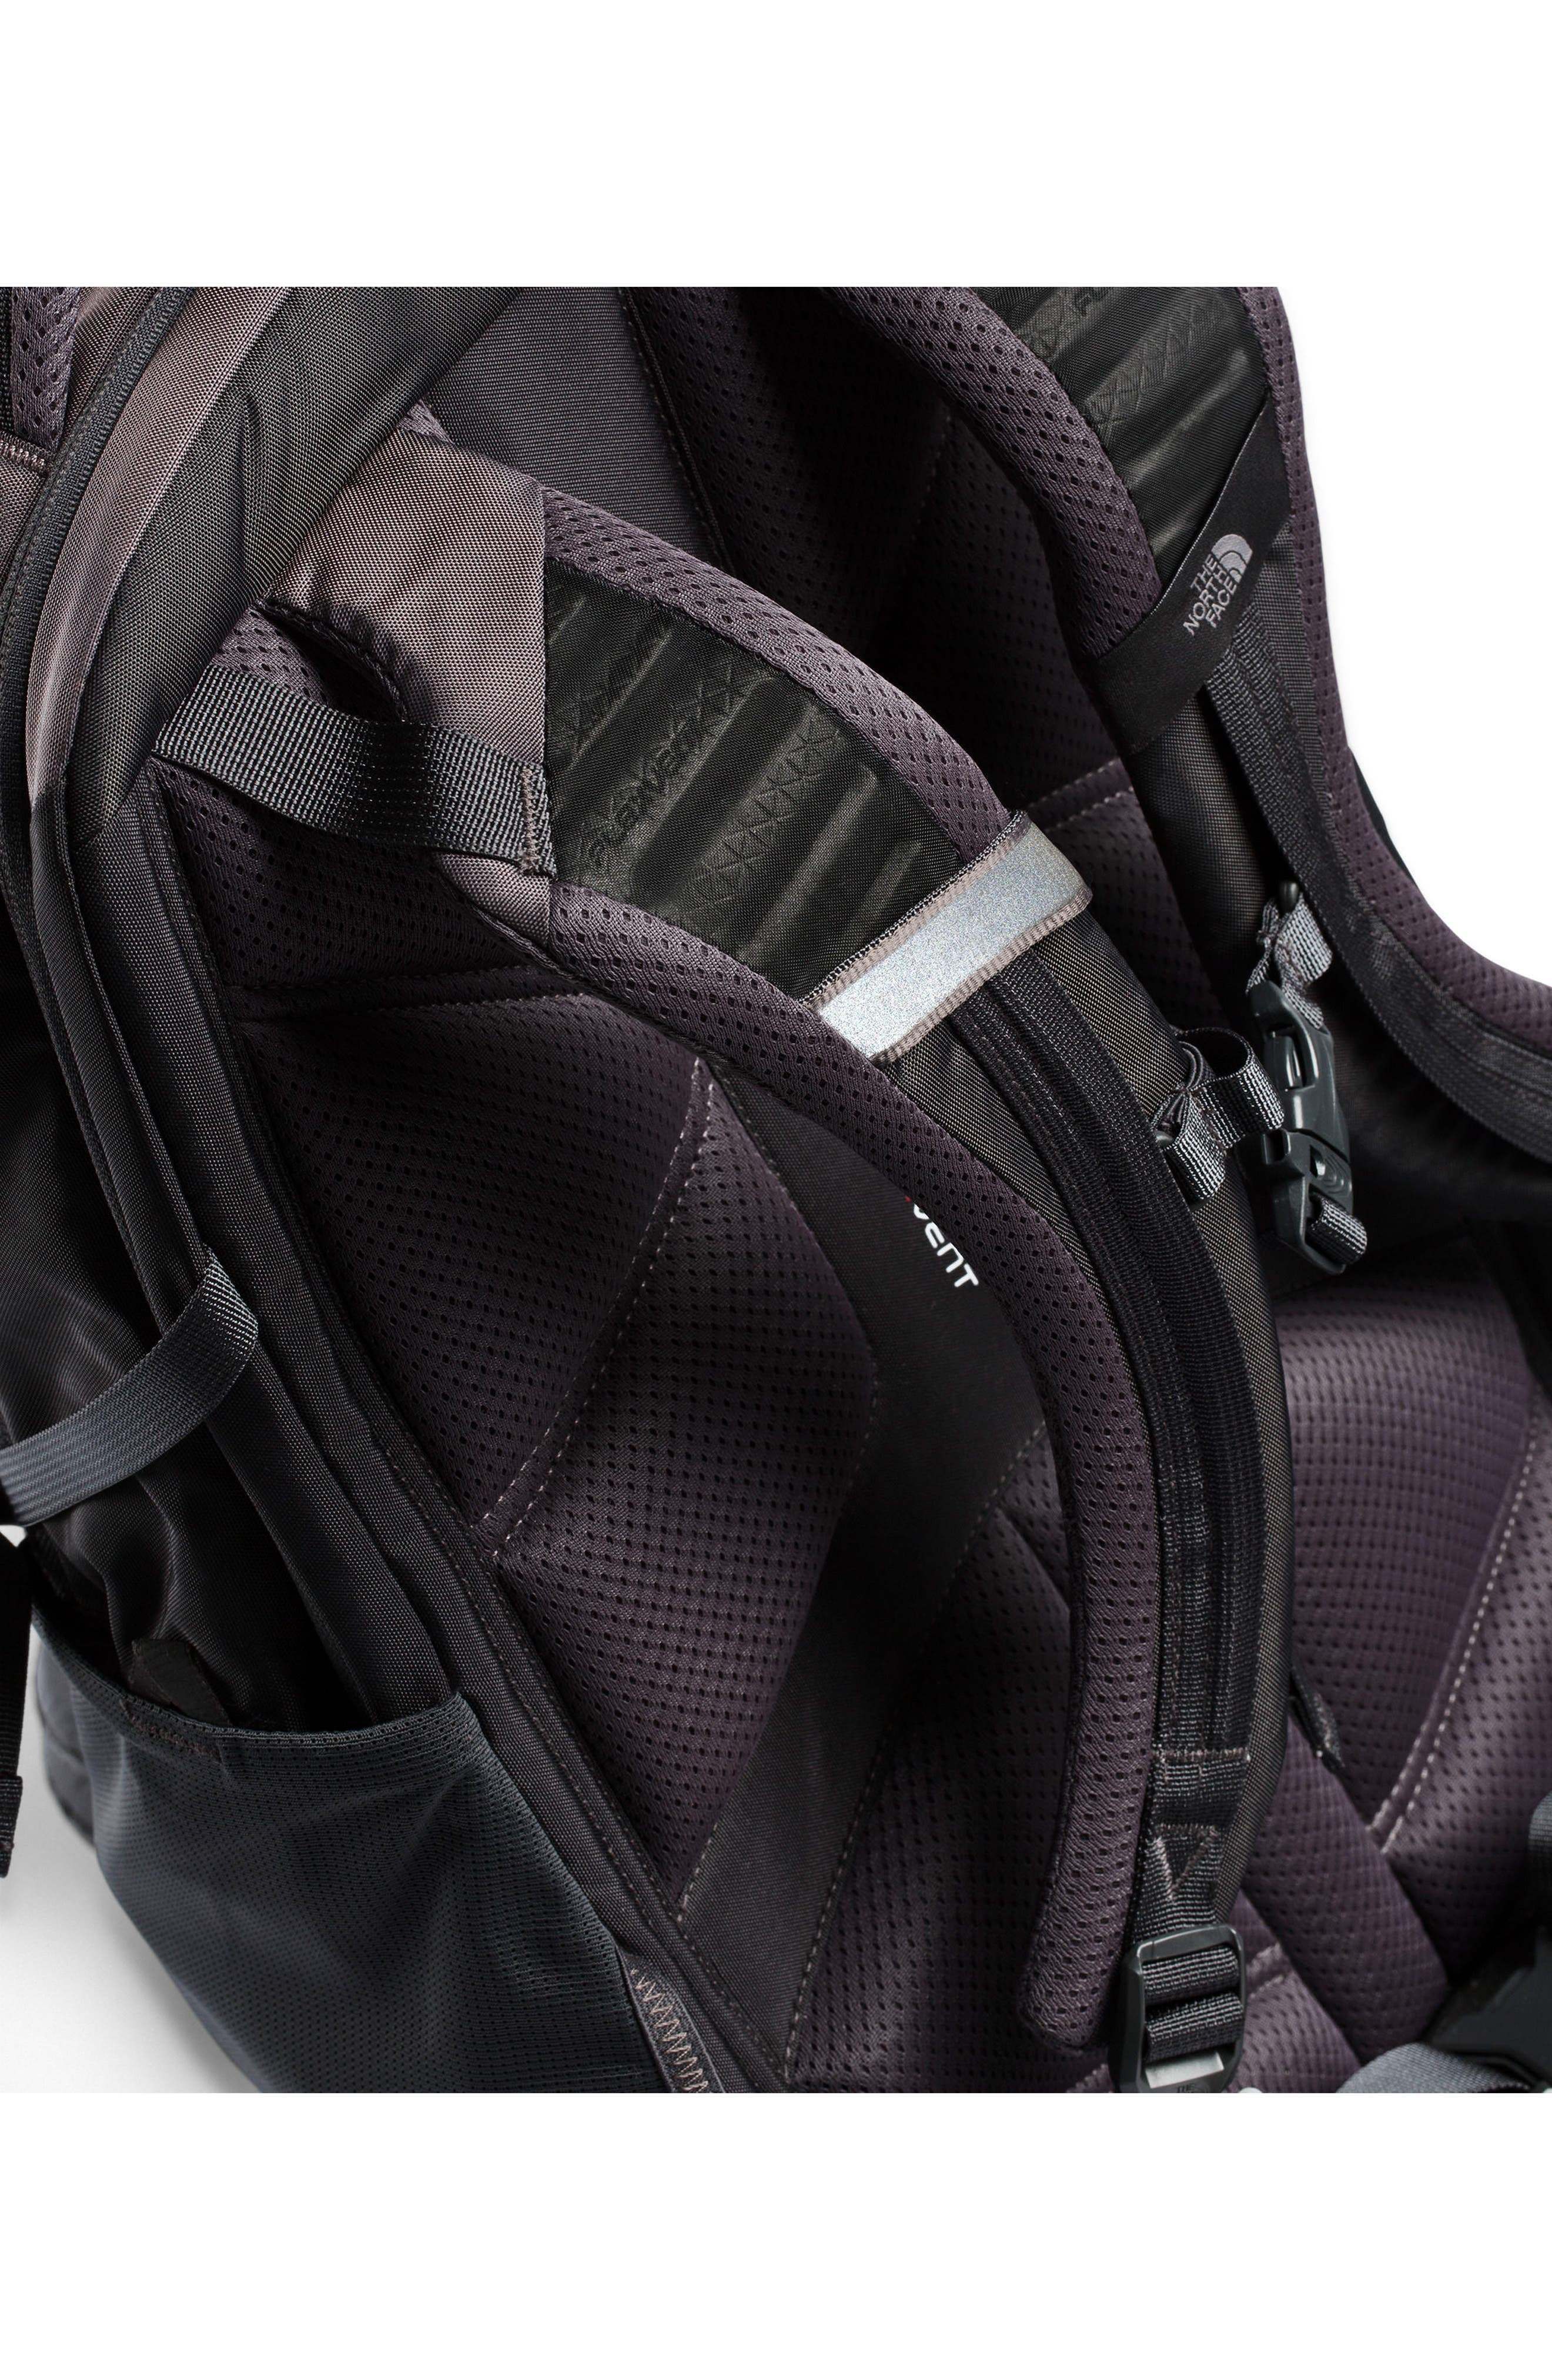 THE NORTH FACE, Recon Backpack, Alternate thumbnail 7, color, RABBIT GREY/ GREY